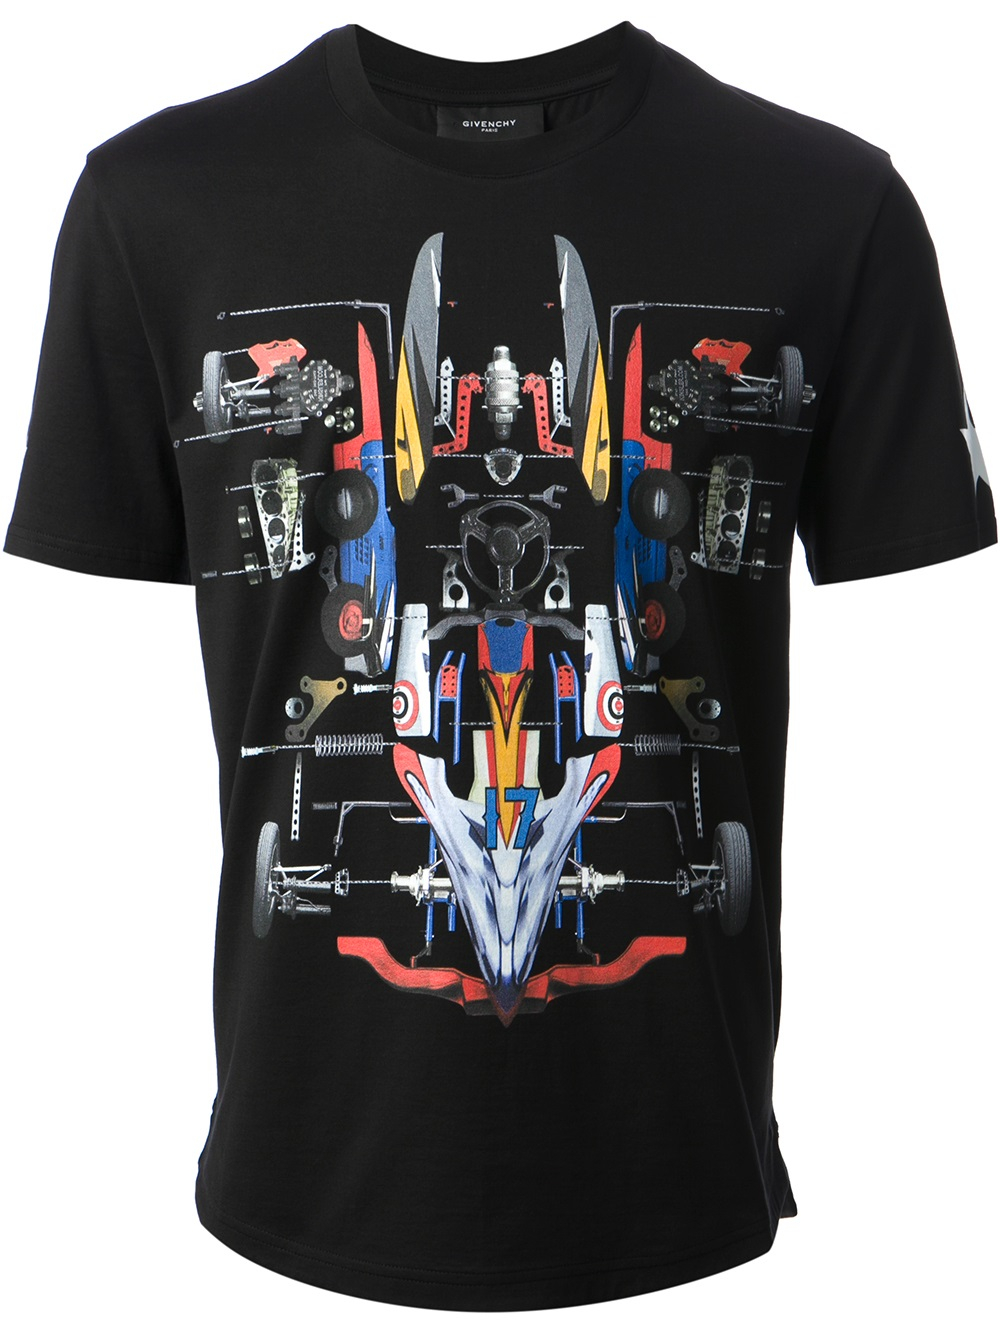 Lyst Givenchy Graphic Print Tshirt In Black For Men